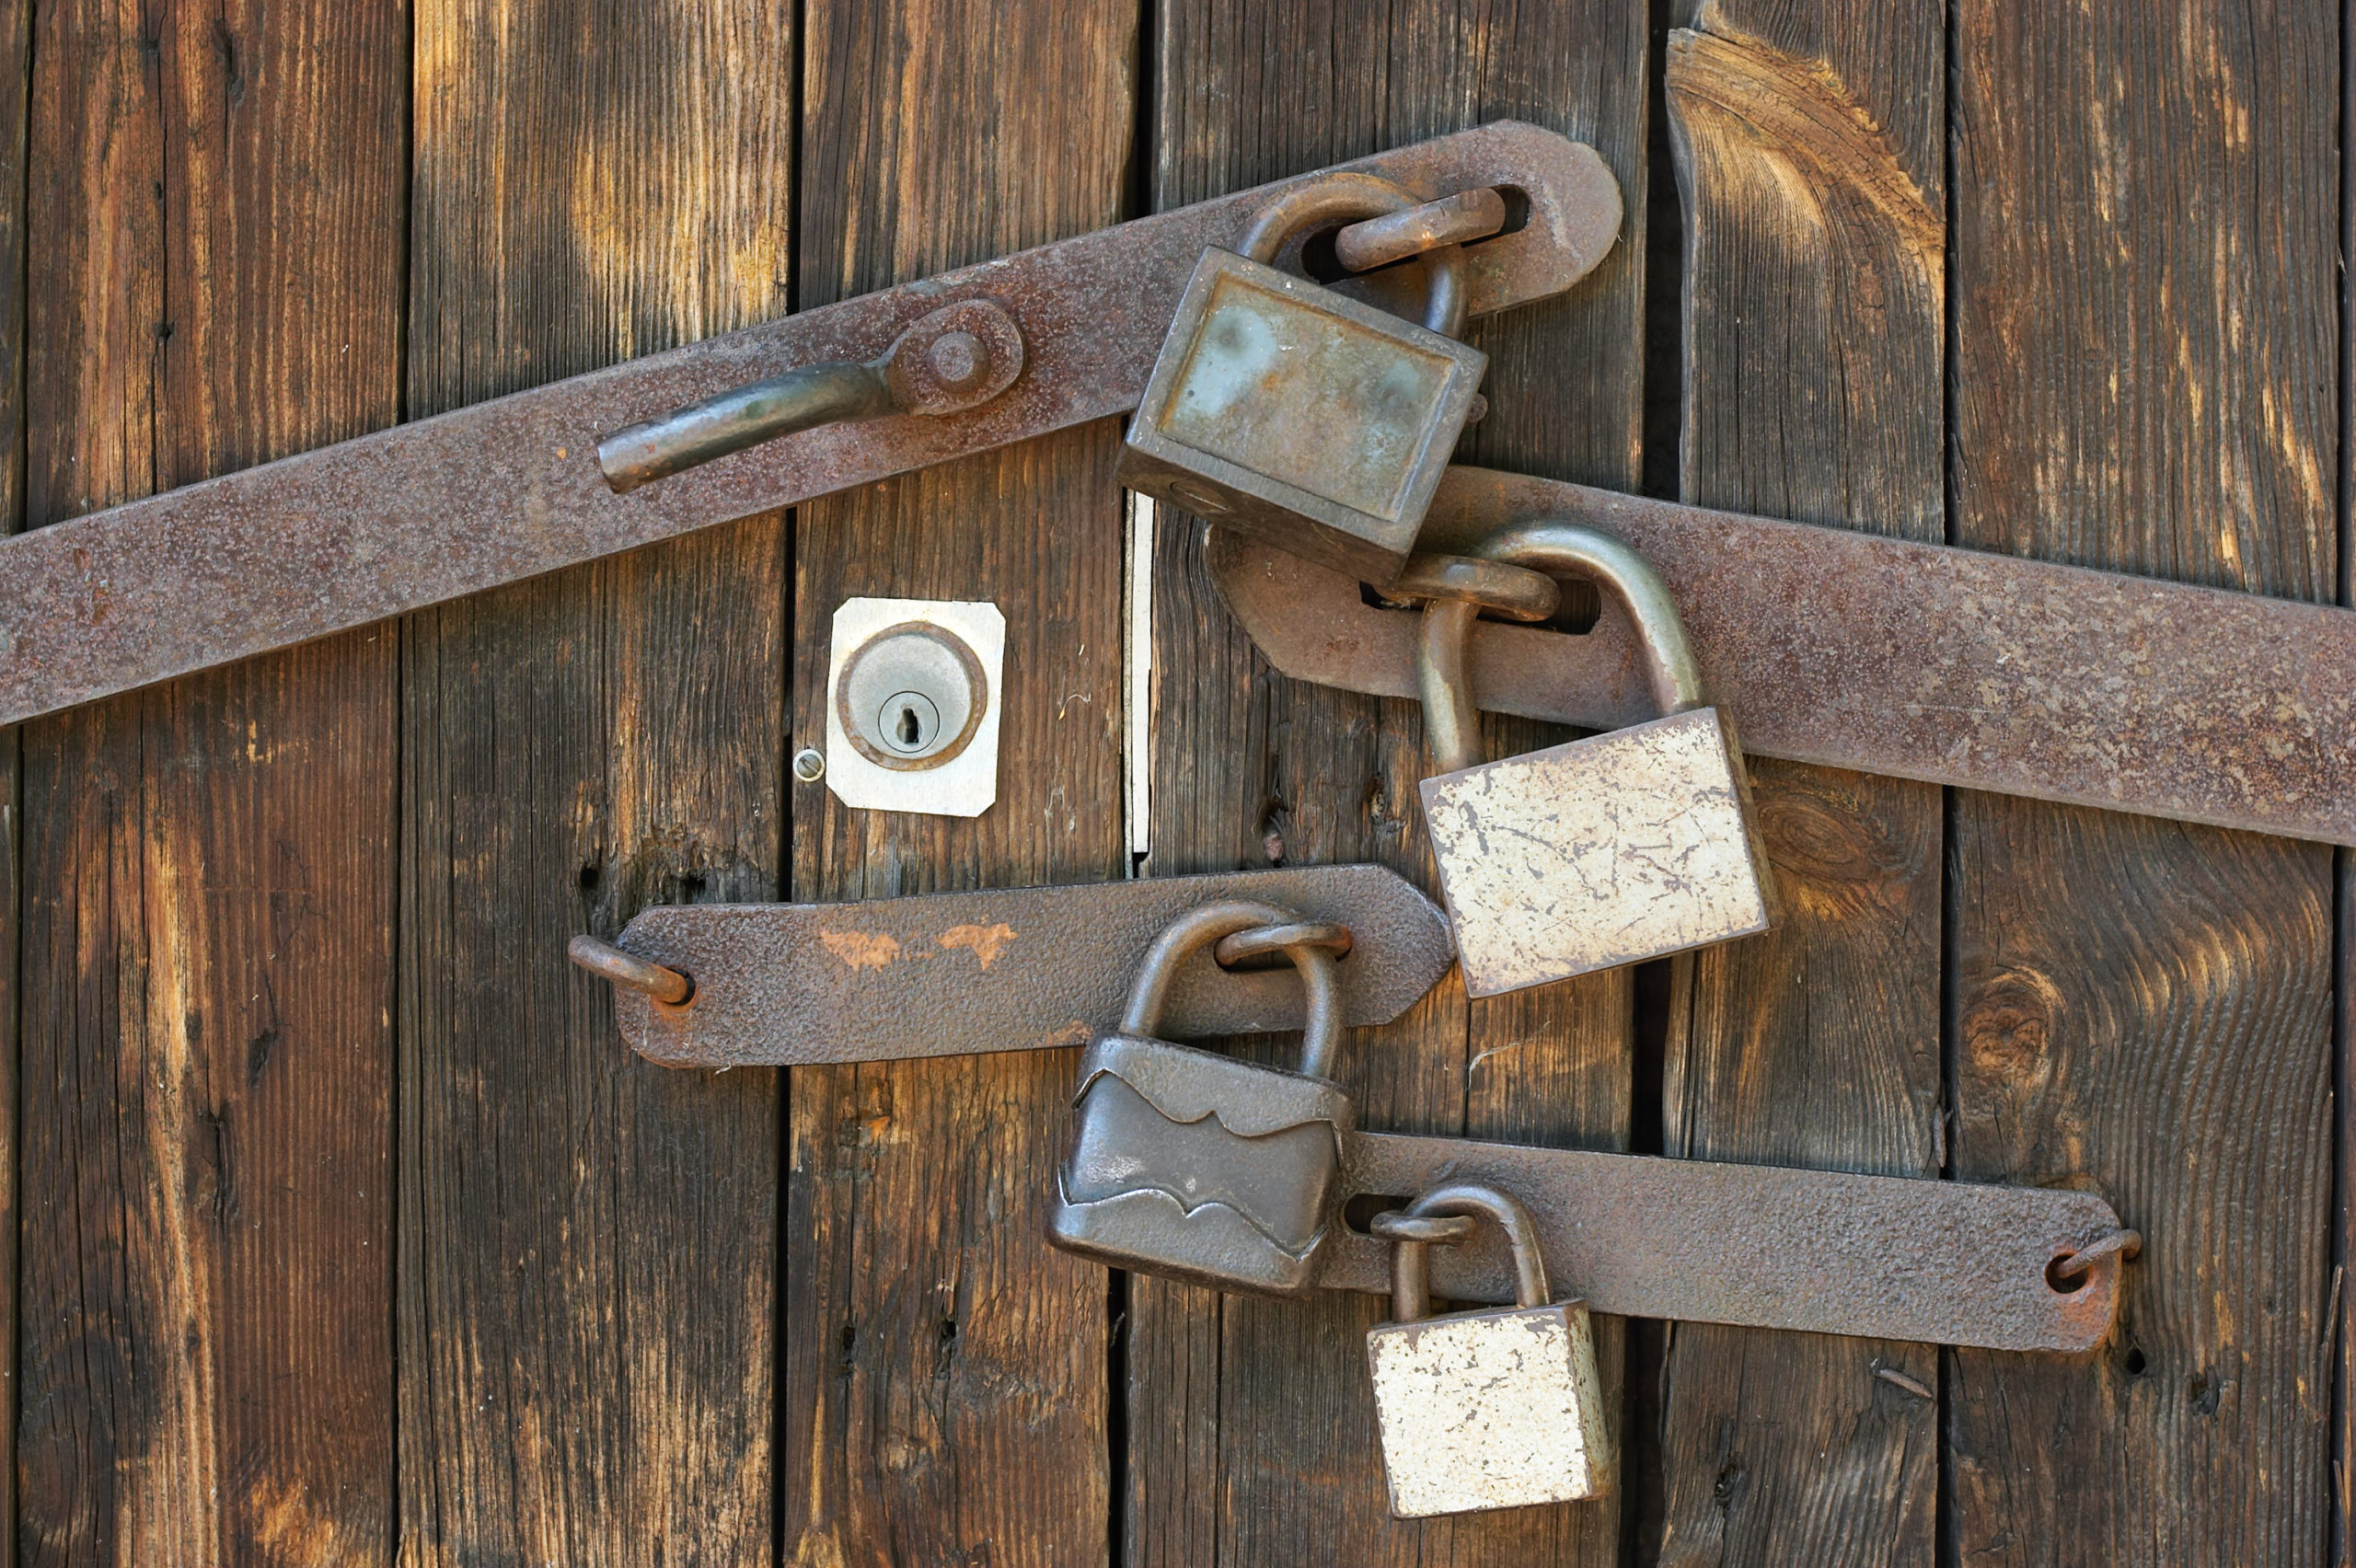 Several padlocks and rusted locks on a solid wooden door